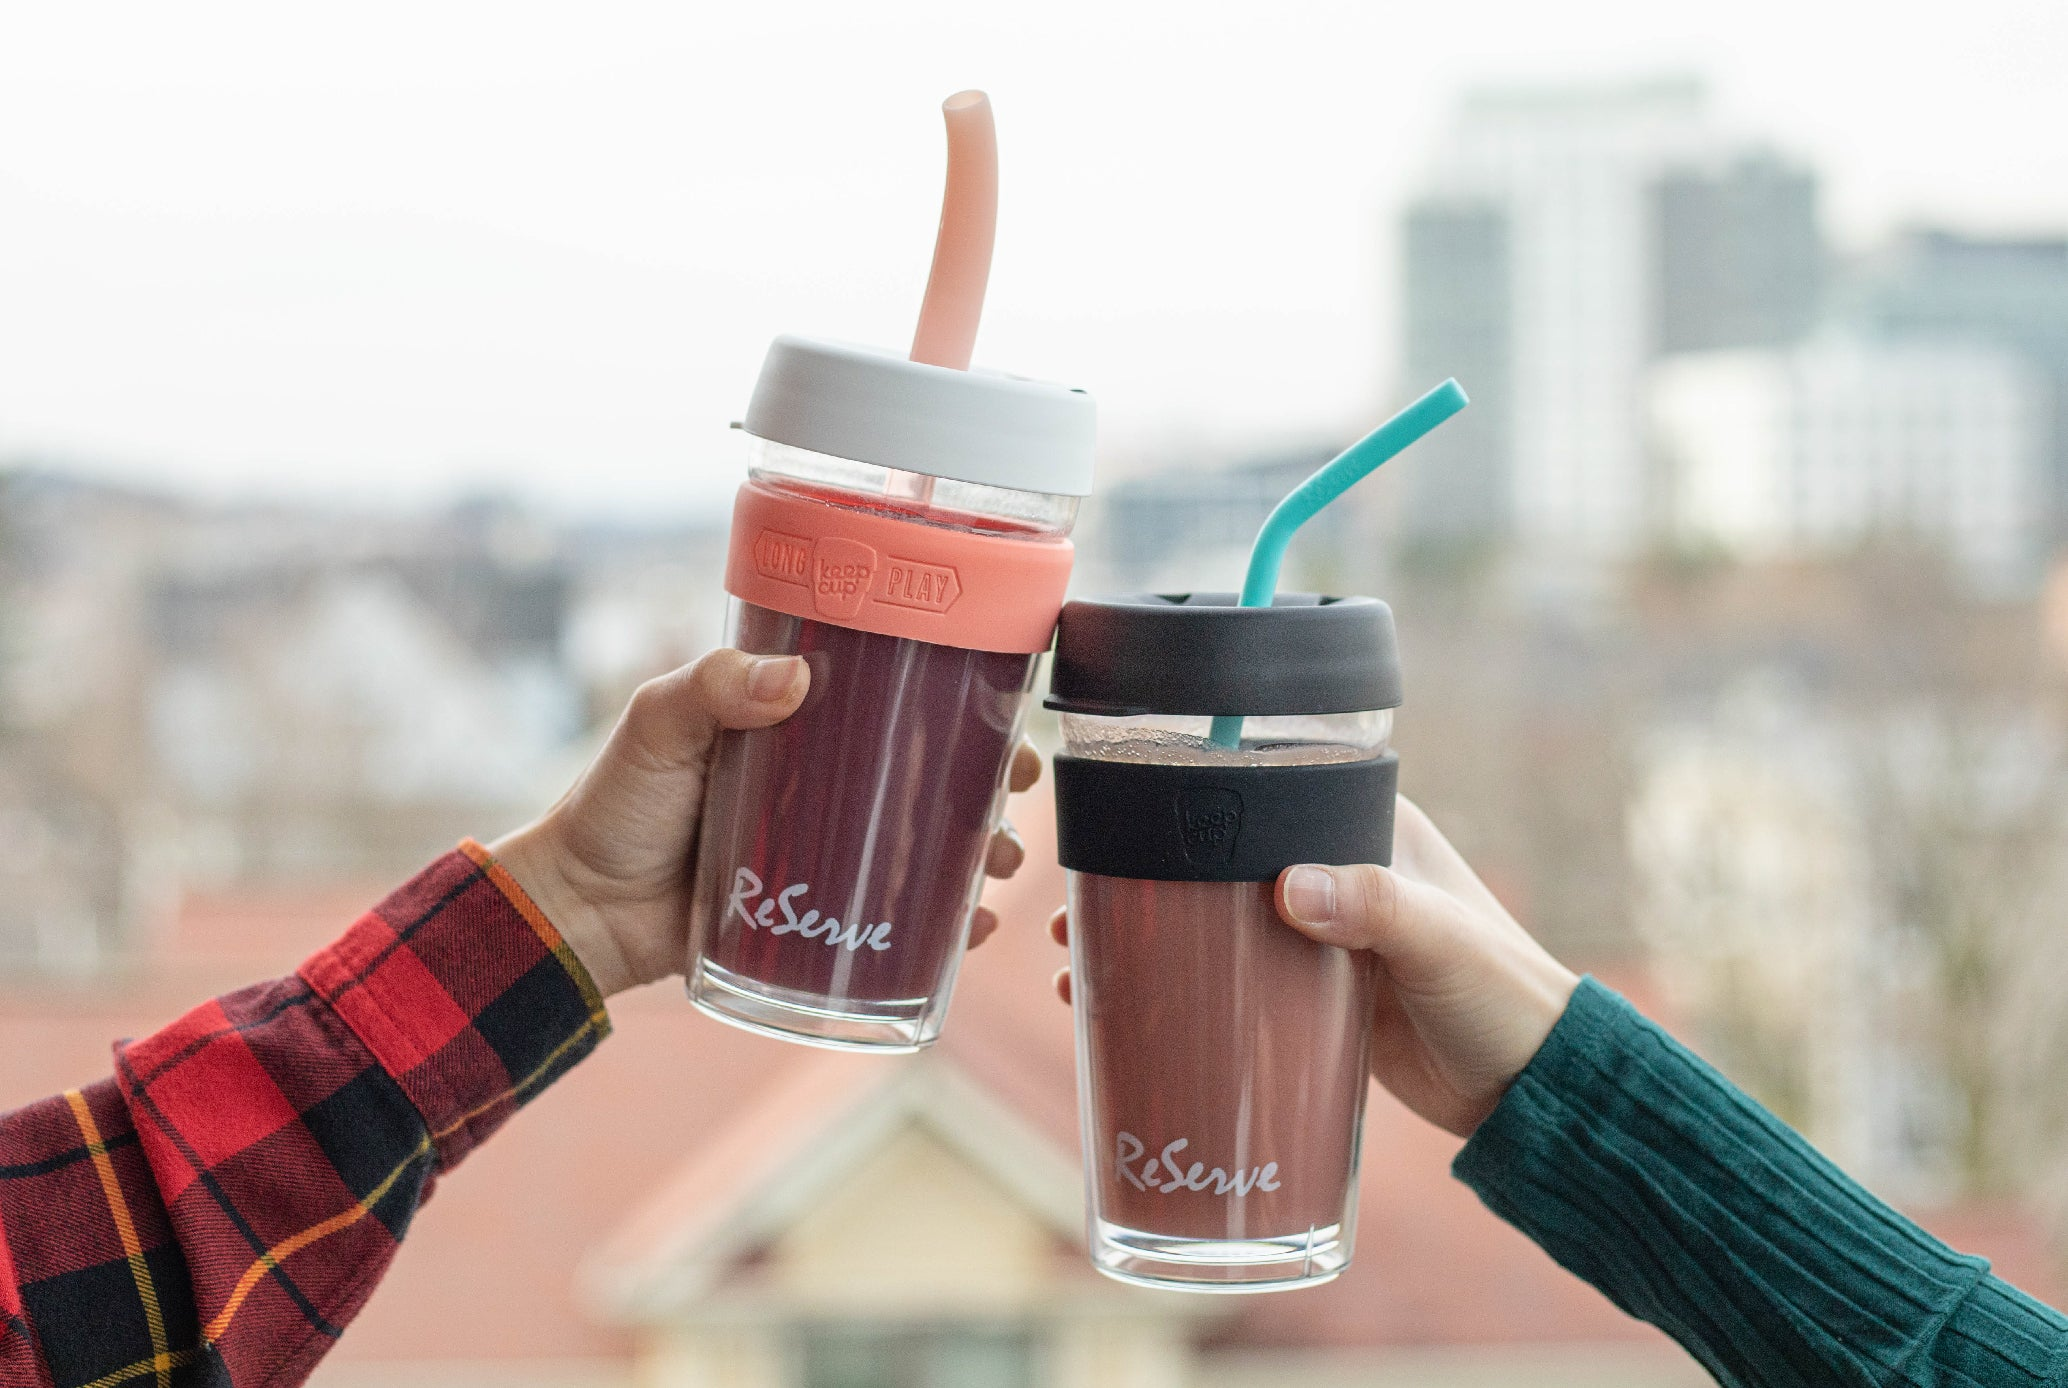 Two smoothie drinks in the ReServe Black Band KeepCup & Pink Band KeepCup. The cups feature Rose Gold Smoothie Straw and Blue Island Paradise duo-hardness silicone straw.